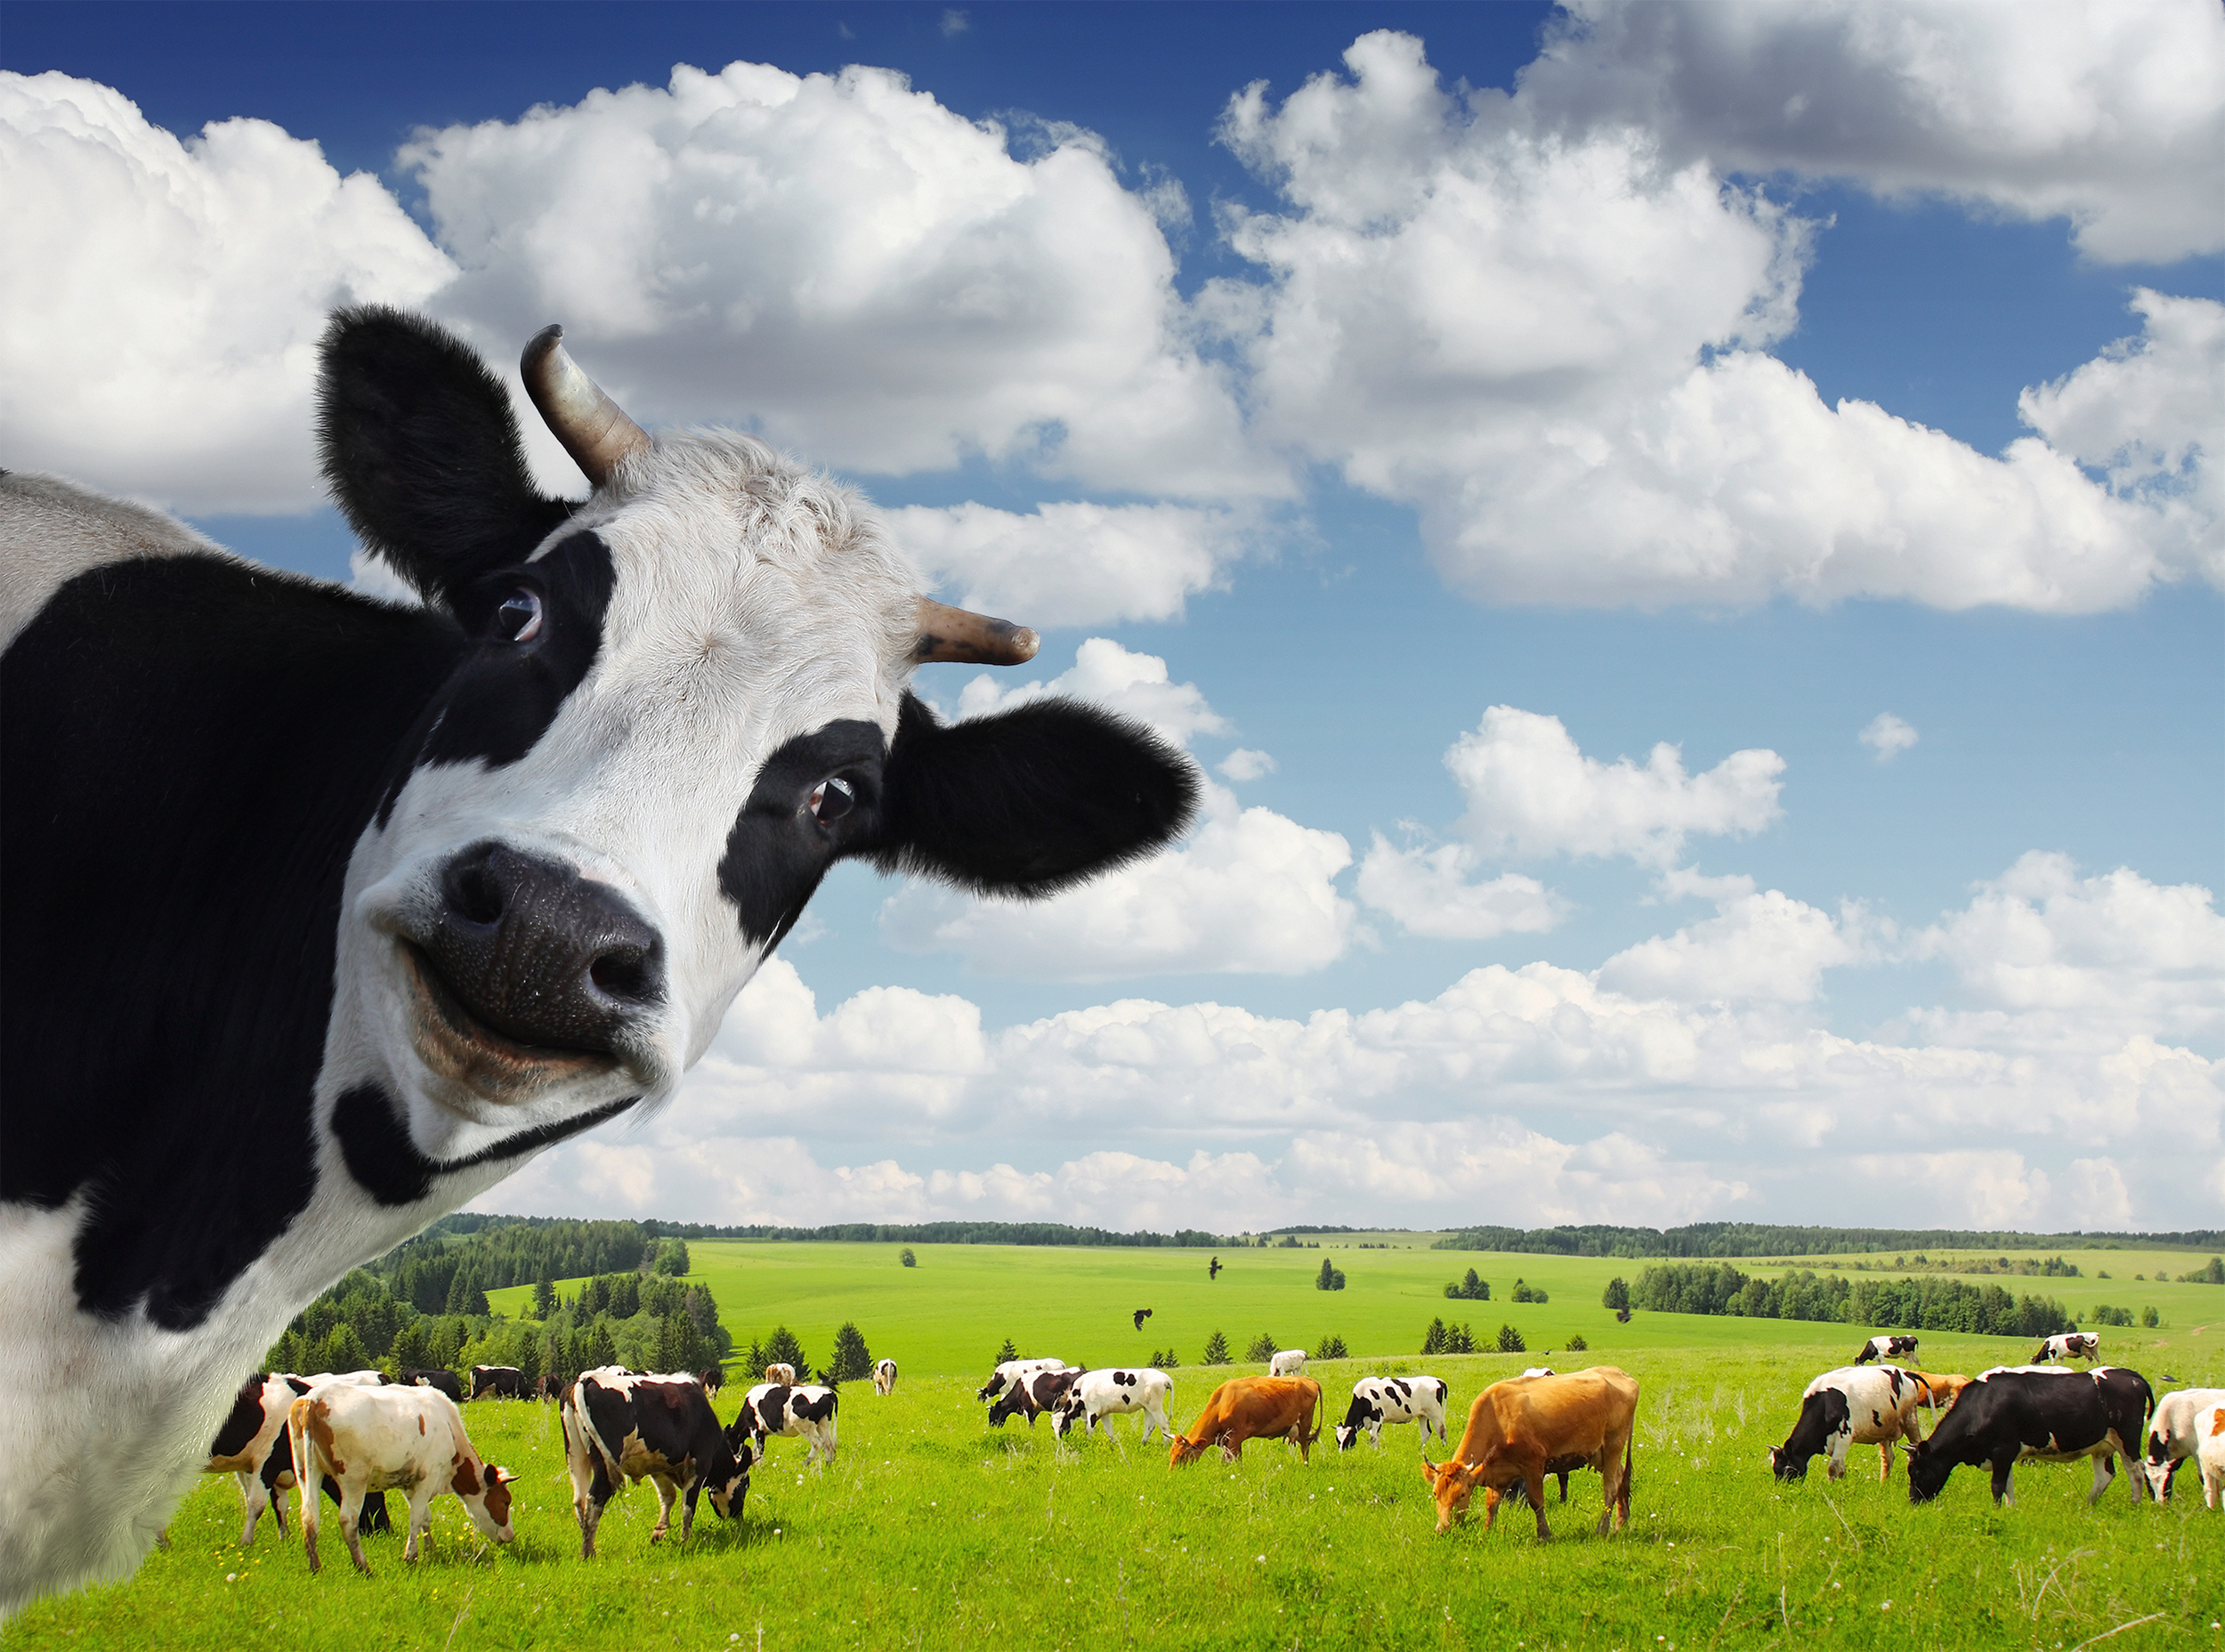 bigstock-Funny-cow-looking-to-a-camera--34491248.jpg